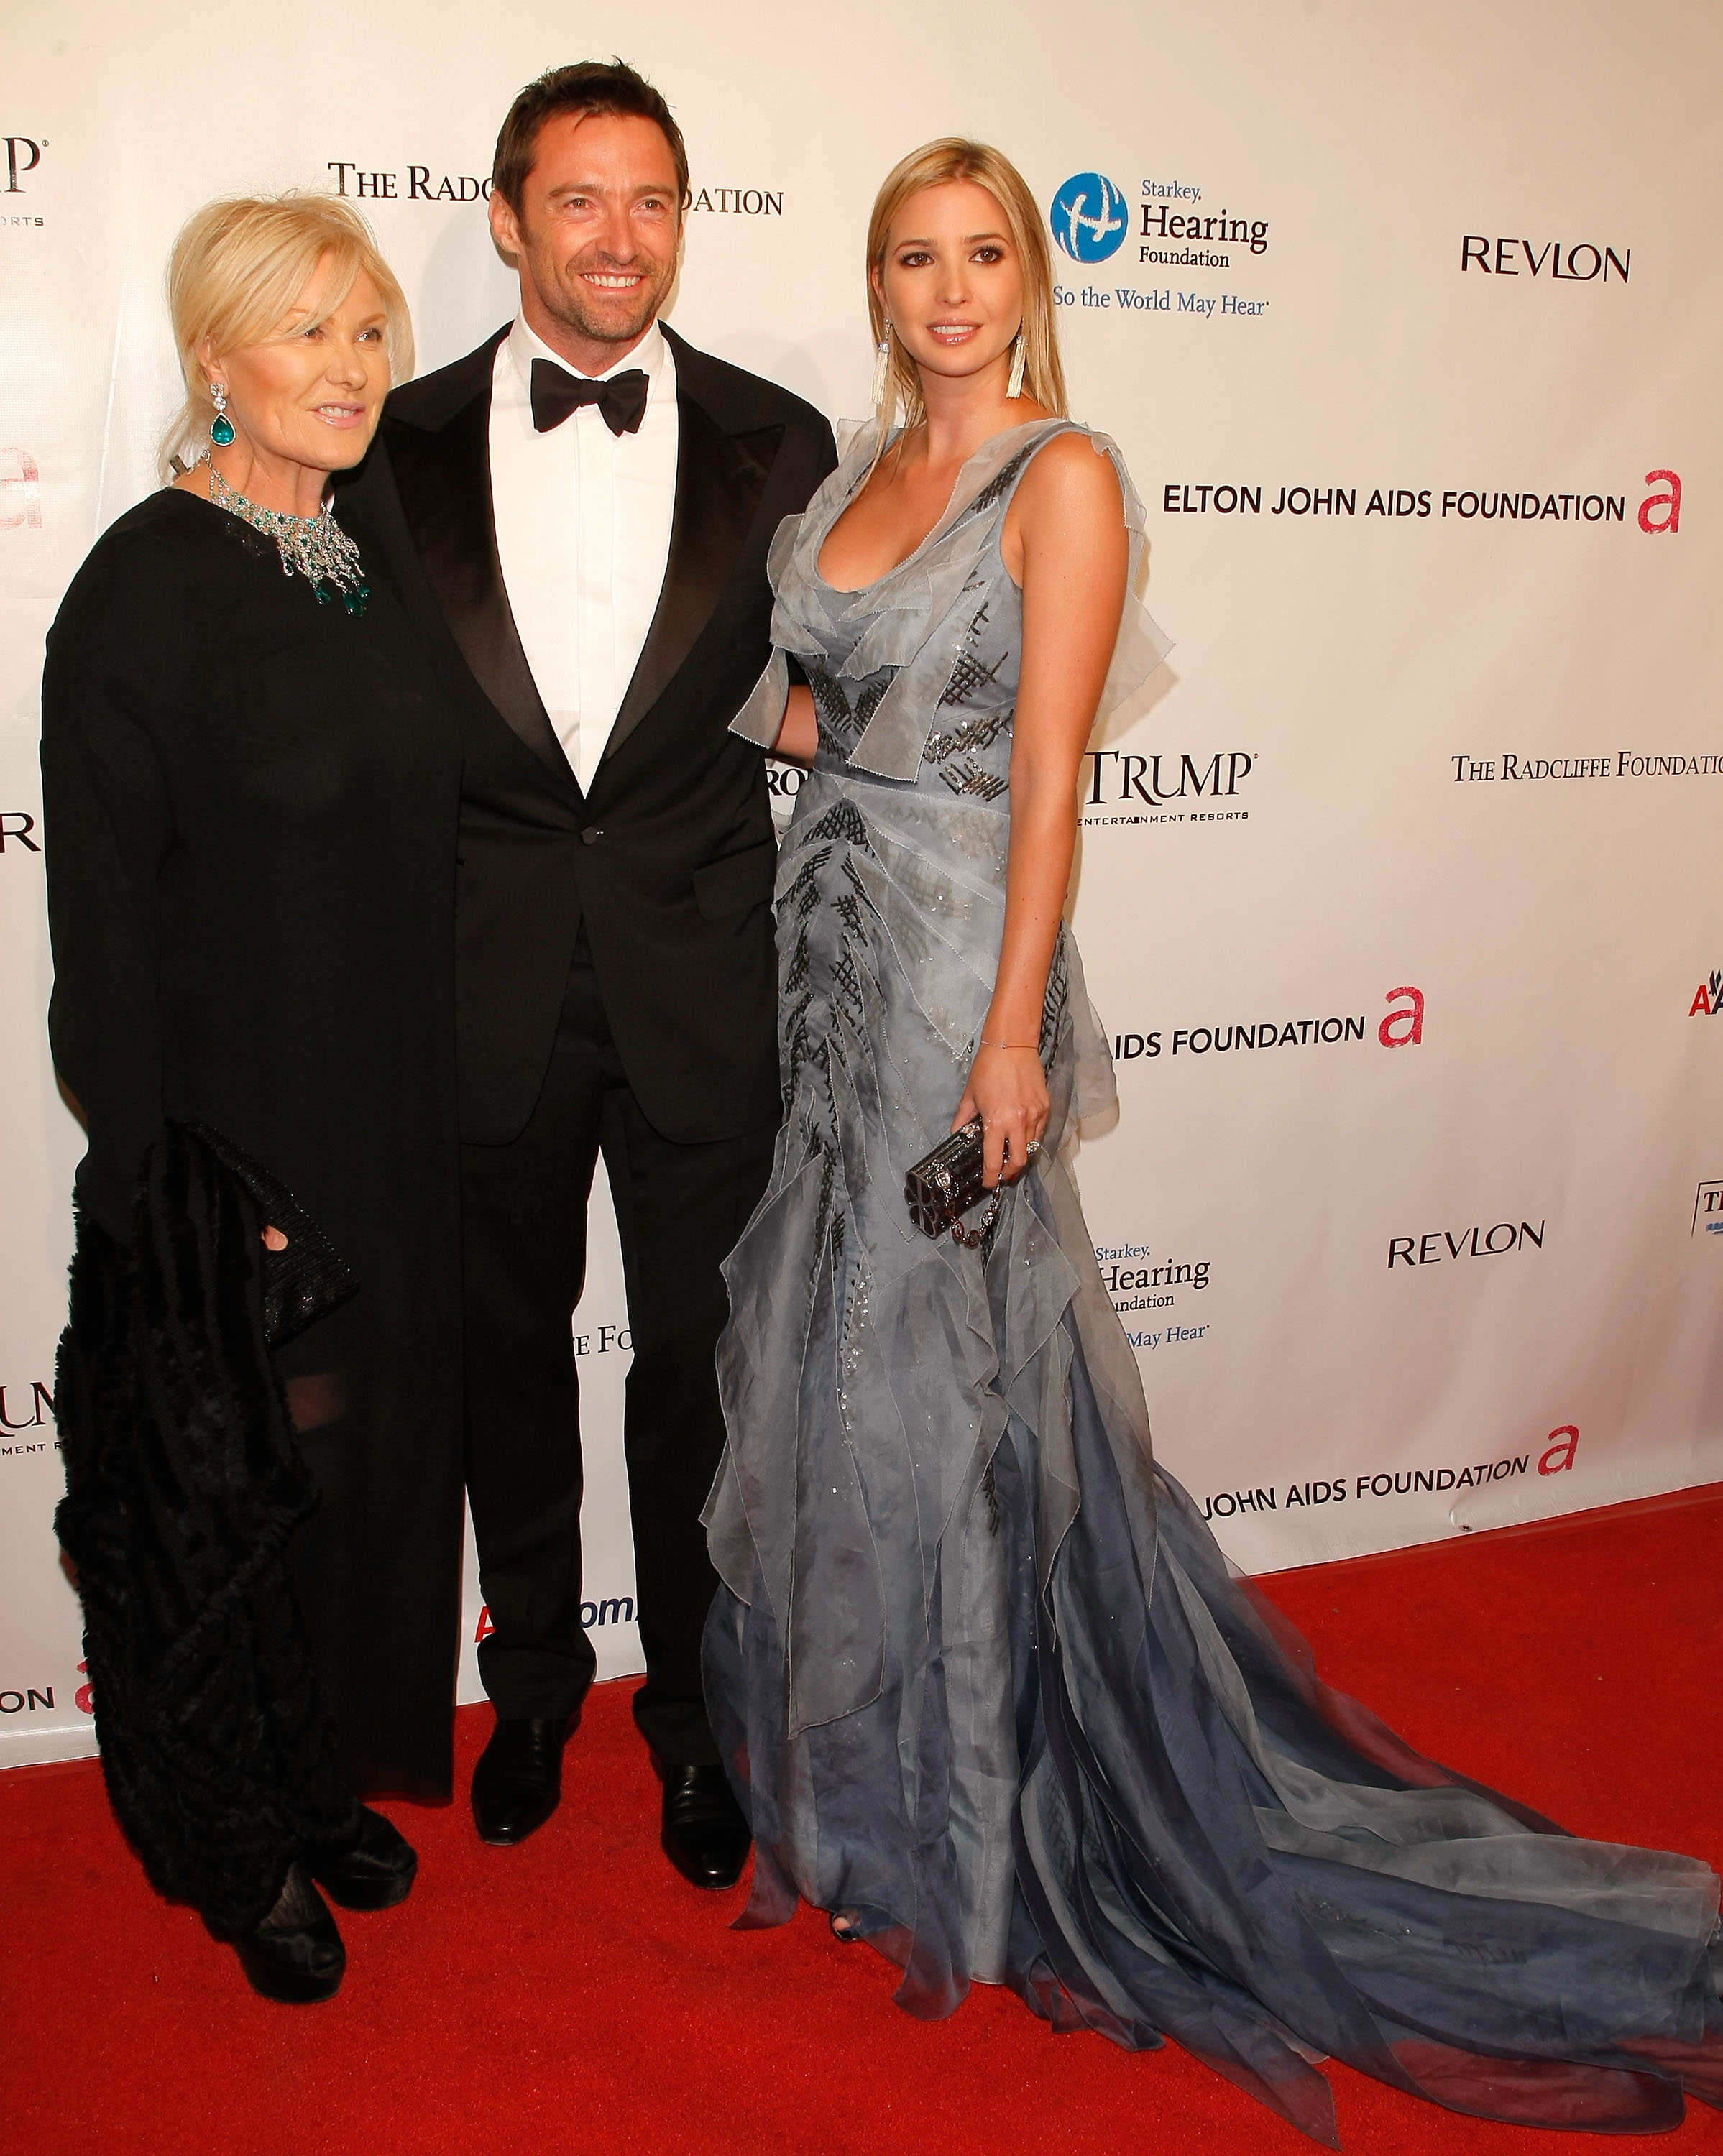 Deborra-Lee Furness, Hugh Jackman and Ivanka Trump attend the 9th Annual Elton John AIDS Foundation's 'An Enduring Vision' benefit at Cipriani, Wall Street on October 18, 2010 in New York City. (Photo by Jemal Countess/Getty Images)